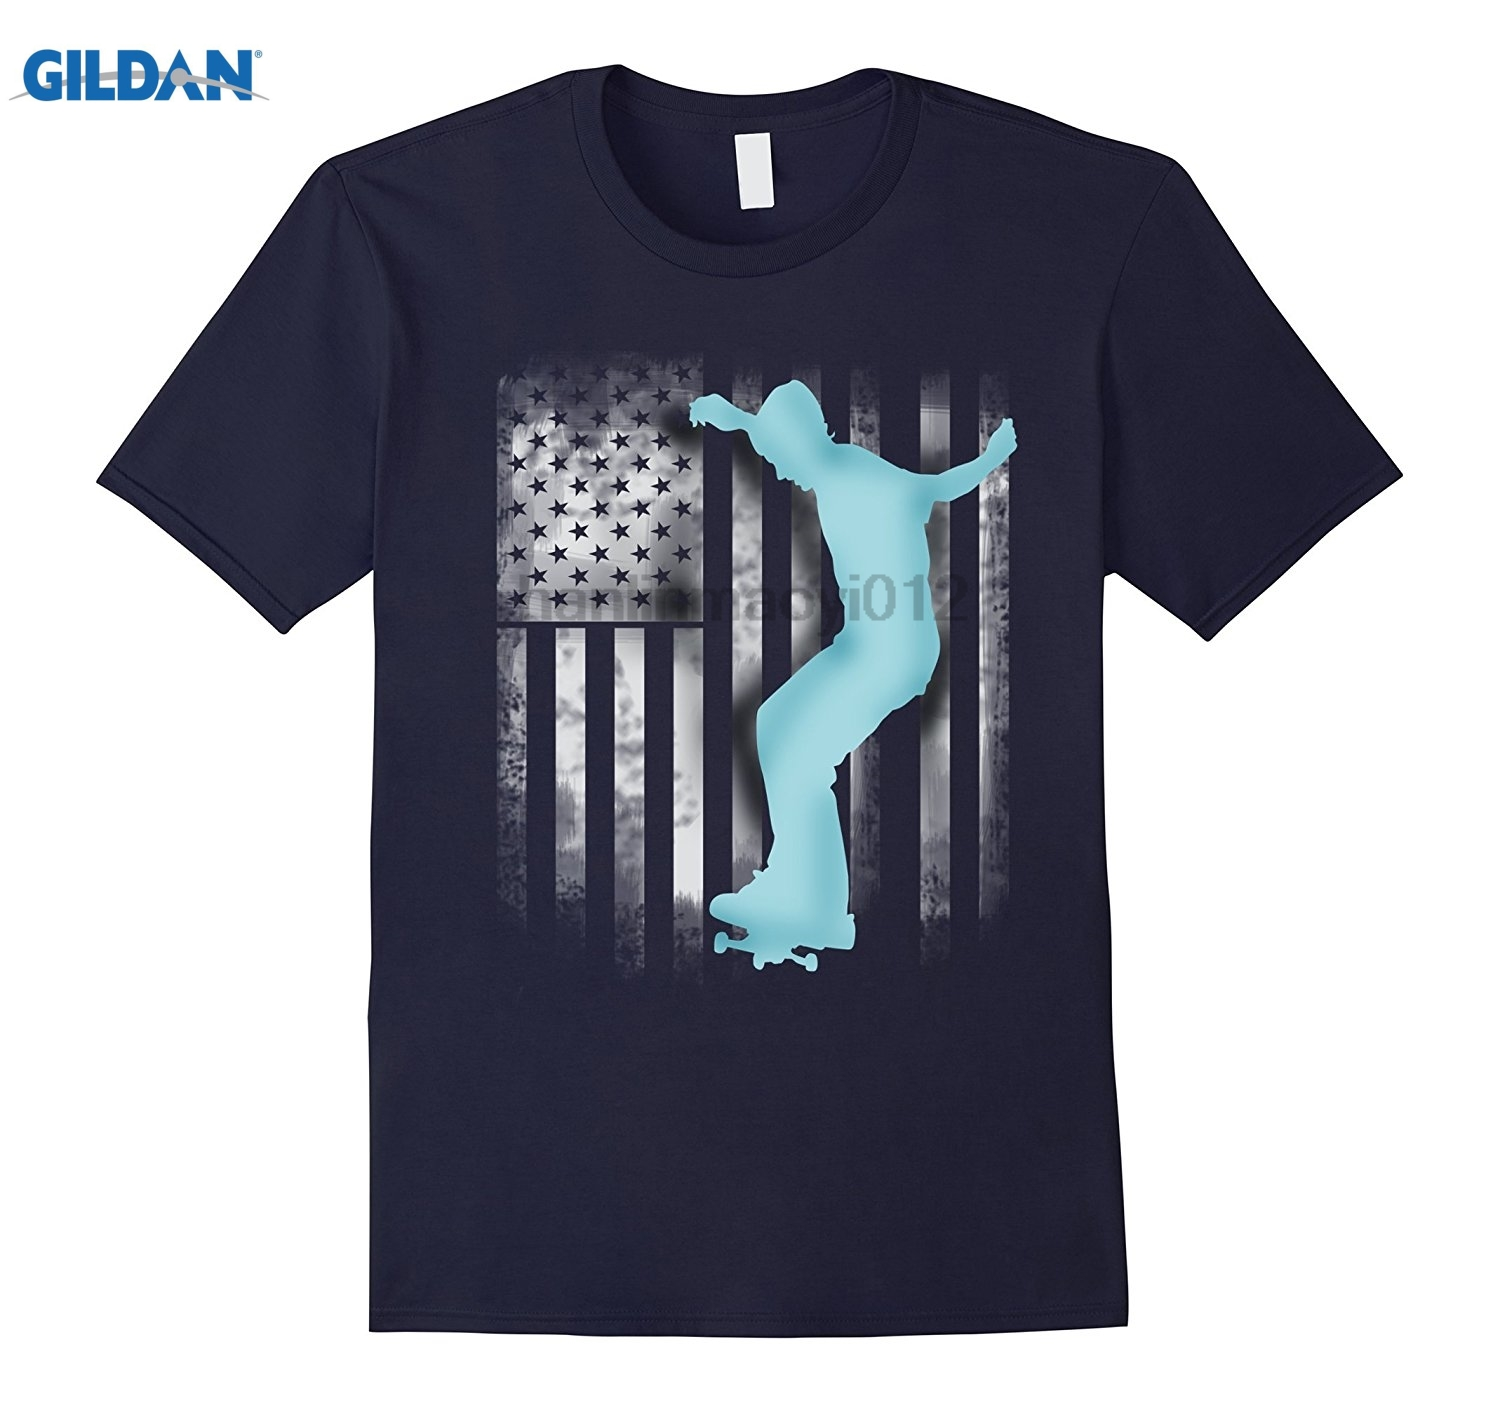 GILDAN skate American Flag T Shirt, u.s. street skateboard Team Mothers Day Ms. T-shirt